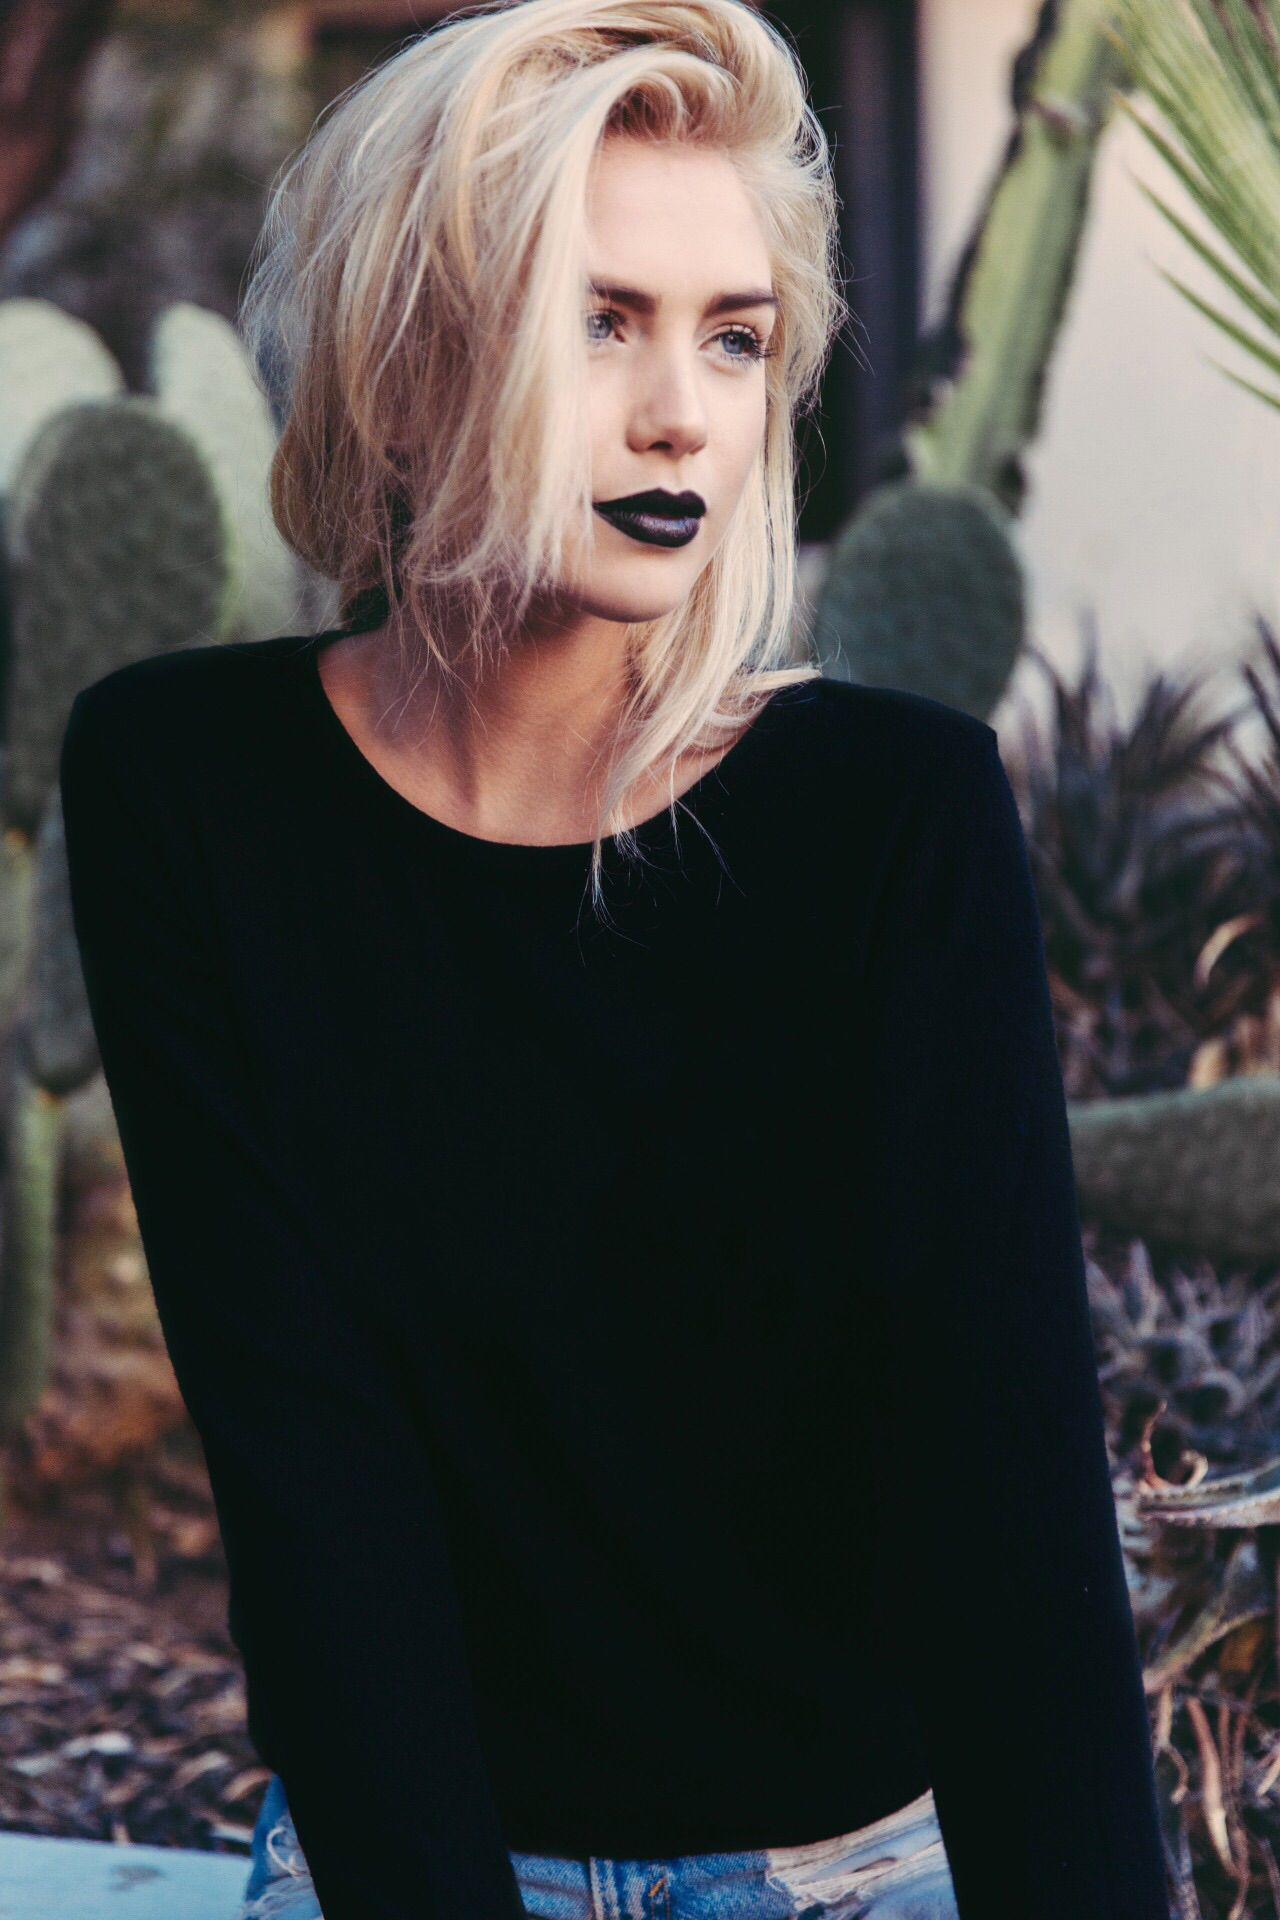 Black lips girl por